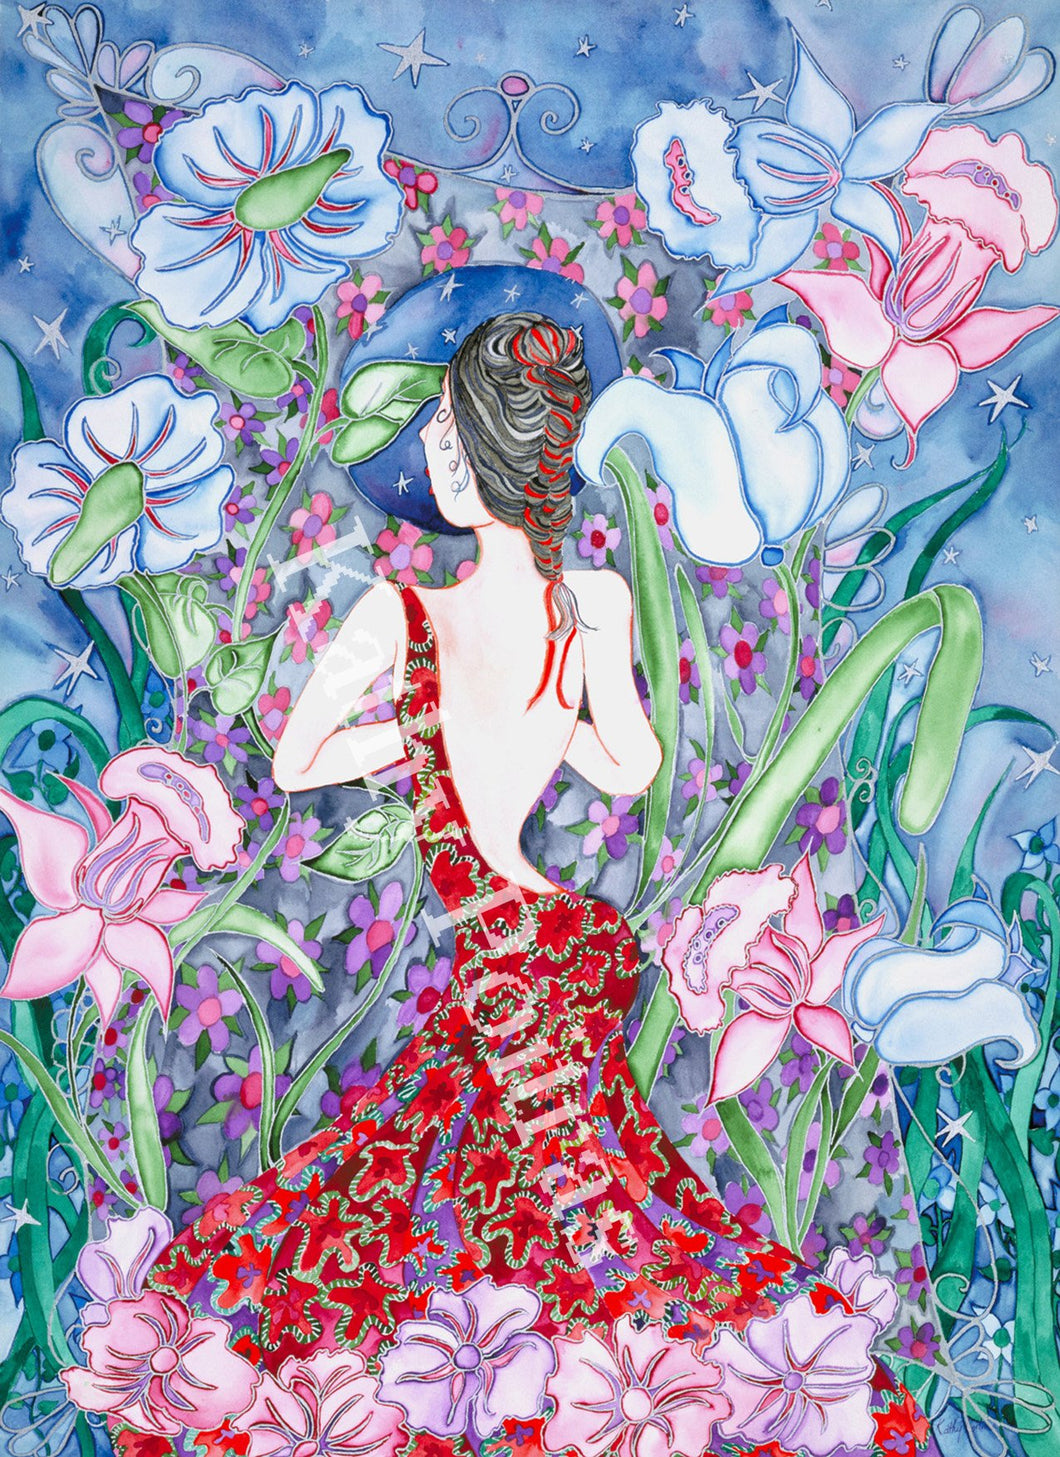 ine art print of a whimsical lady standing in from of fantasy flowers.  She is wearing a beautiful low back burgundy patterned dress.